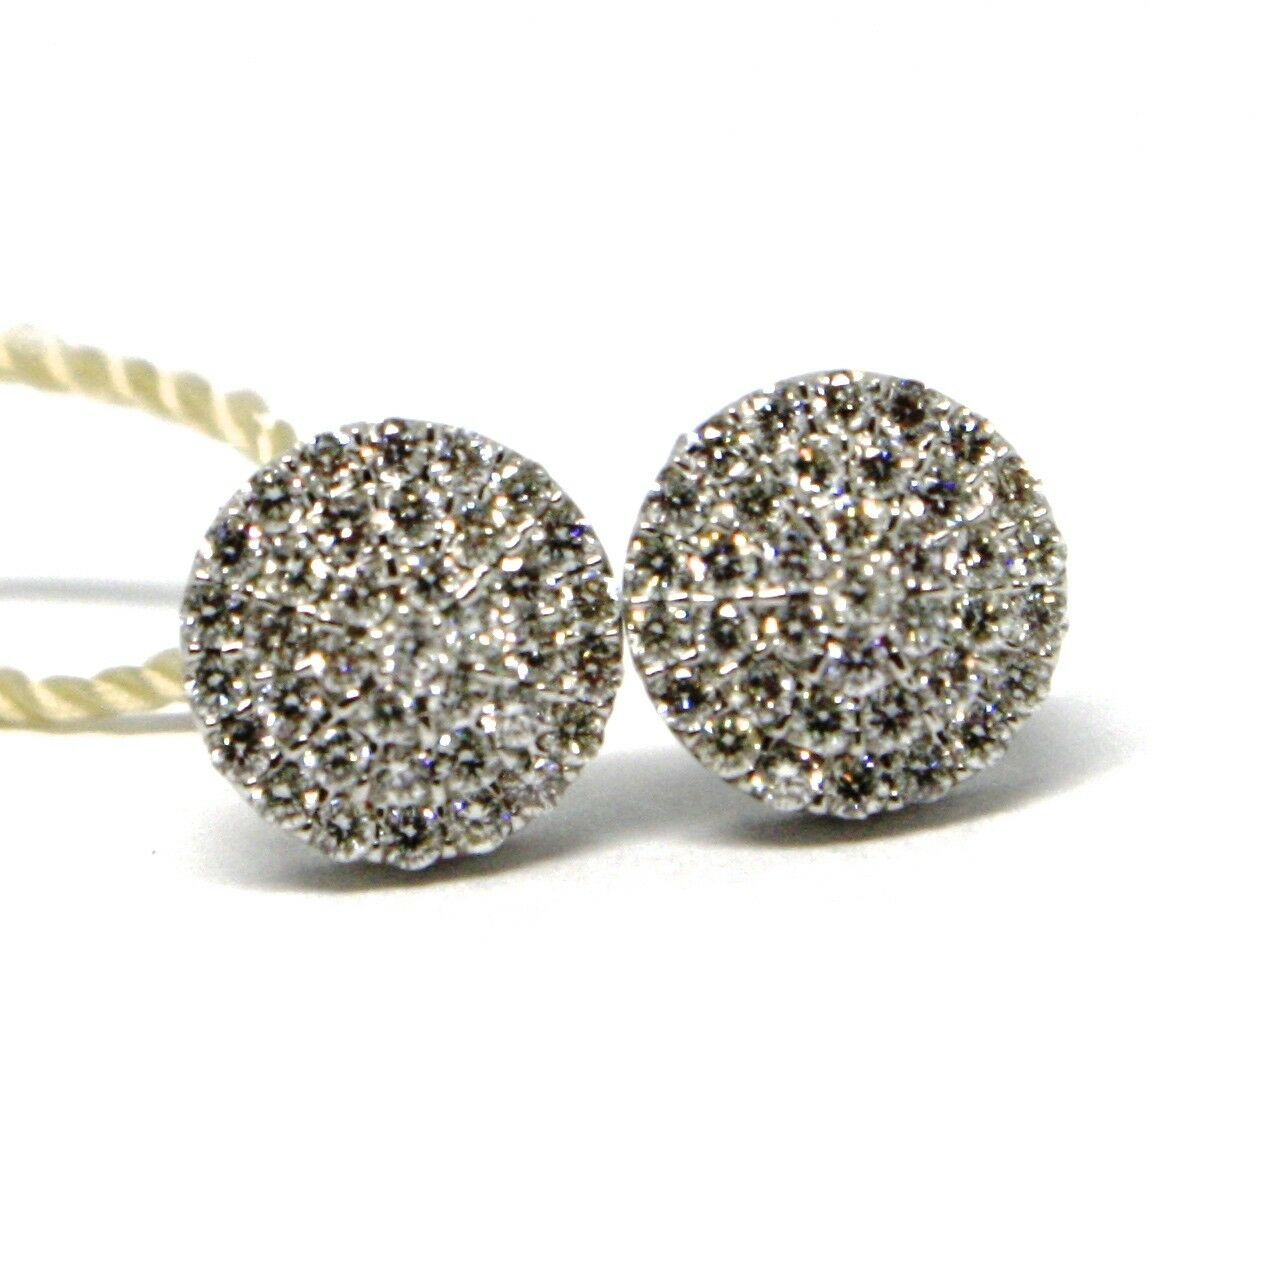 White Gold Earrings 750 18k, 0.50 Carat Diamonds, Button, Round, sett 8 MM